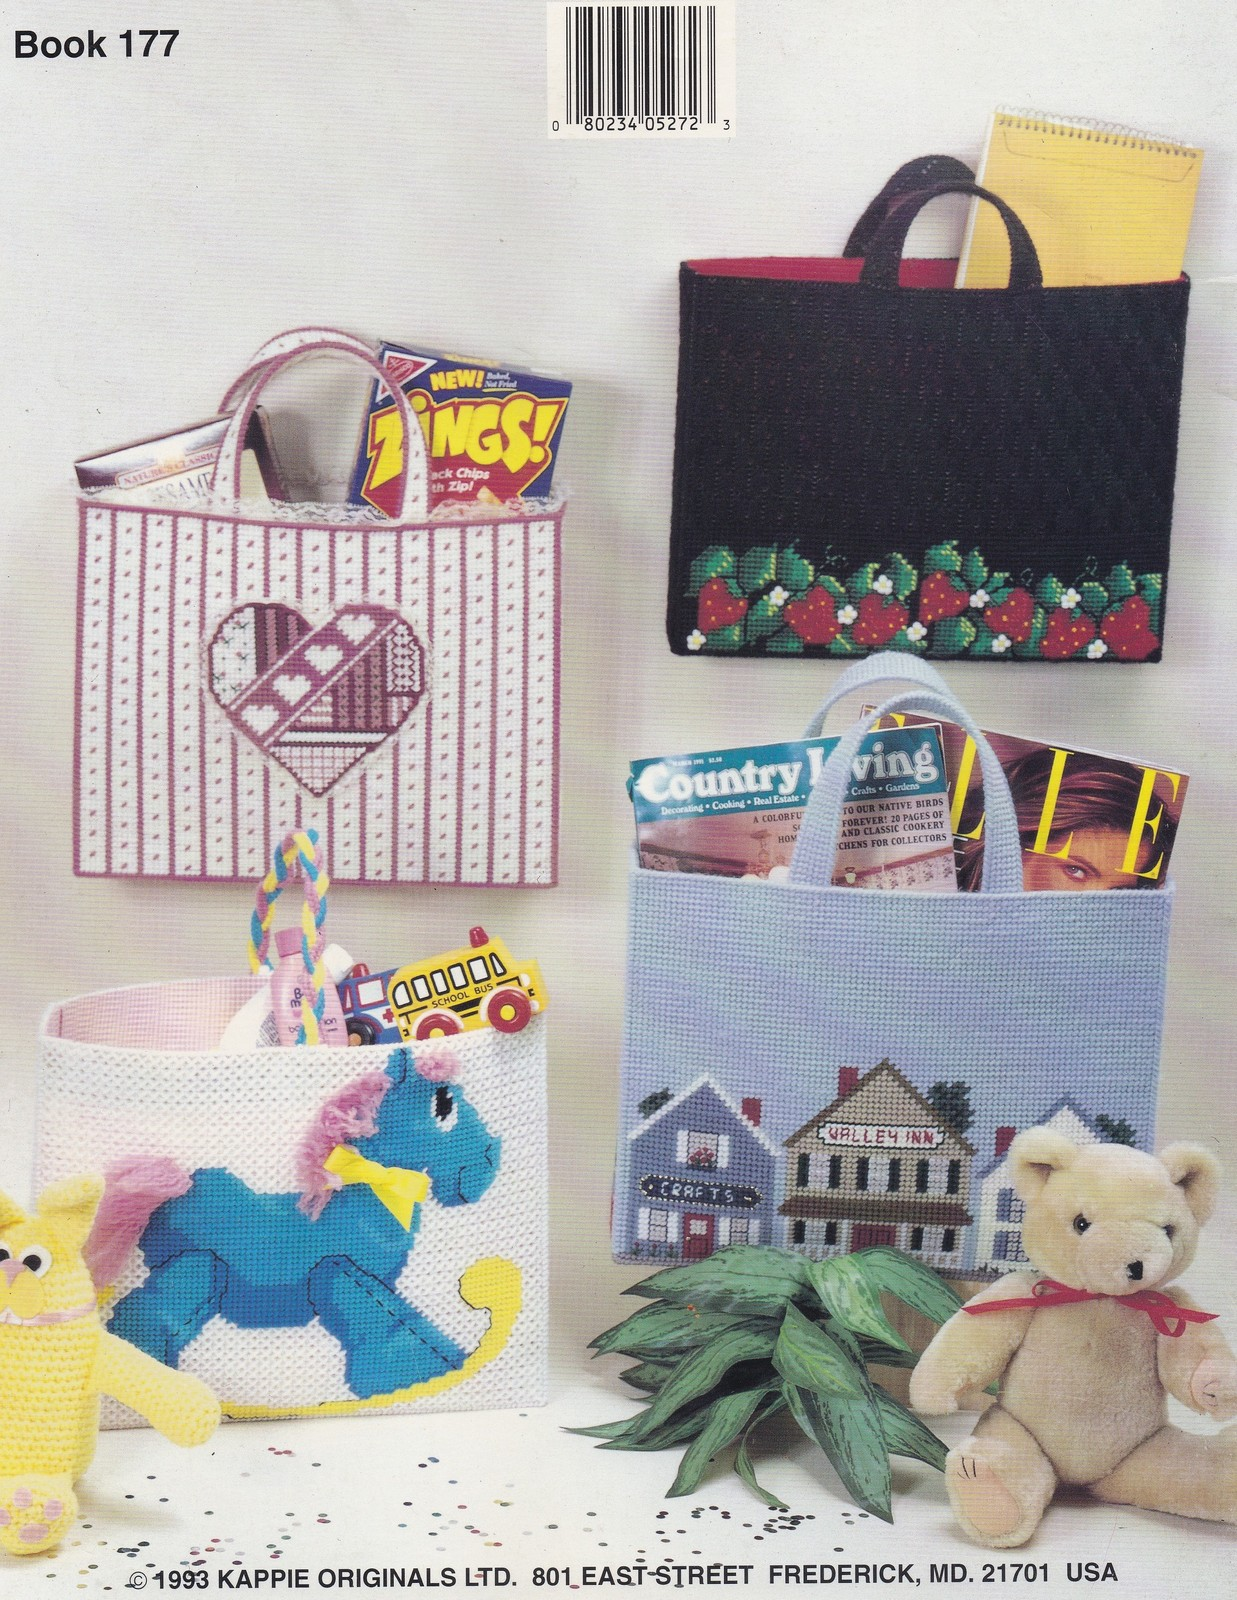 Totes, Kappie Plastic Canvas Pattern Book 177 Village Shop  Rocking Horse & More